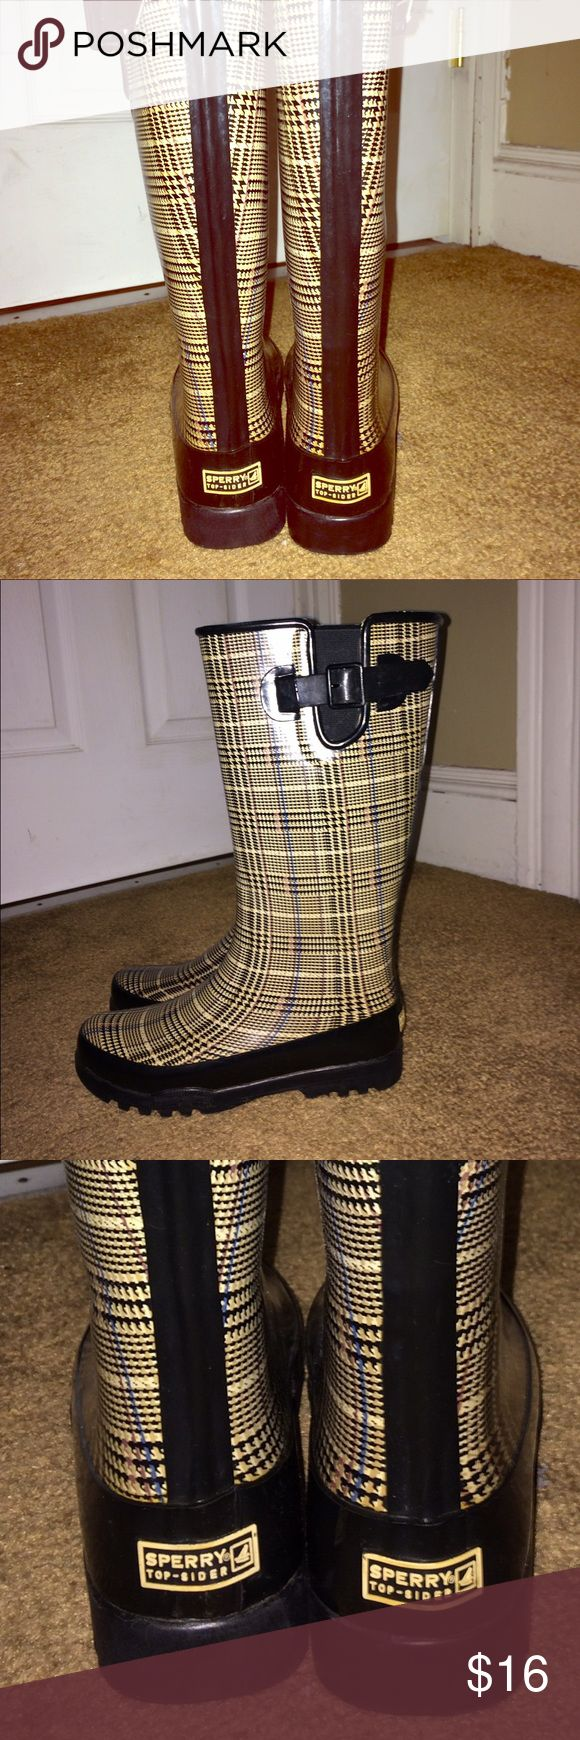 Sperry Top Sider Rubber Boots. Sperry Rubber Boots or 'Wellies' in plaid with buckle detail at top and with a comfy black fleece lining. Size 7 EUC. Sperry Top-Sider Shoes Winter & Rain Boots